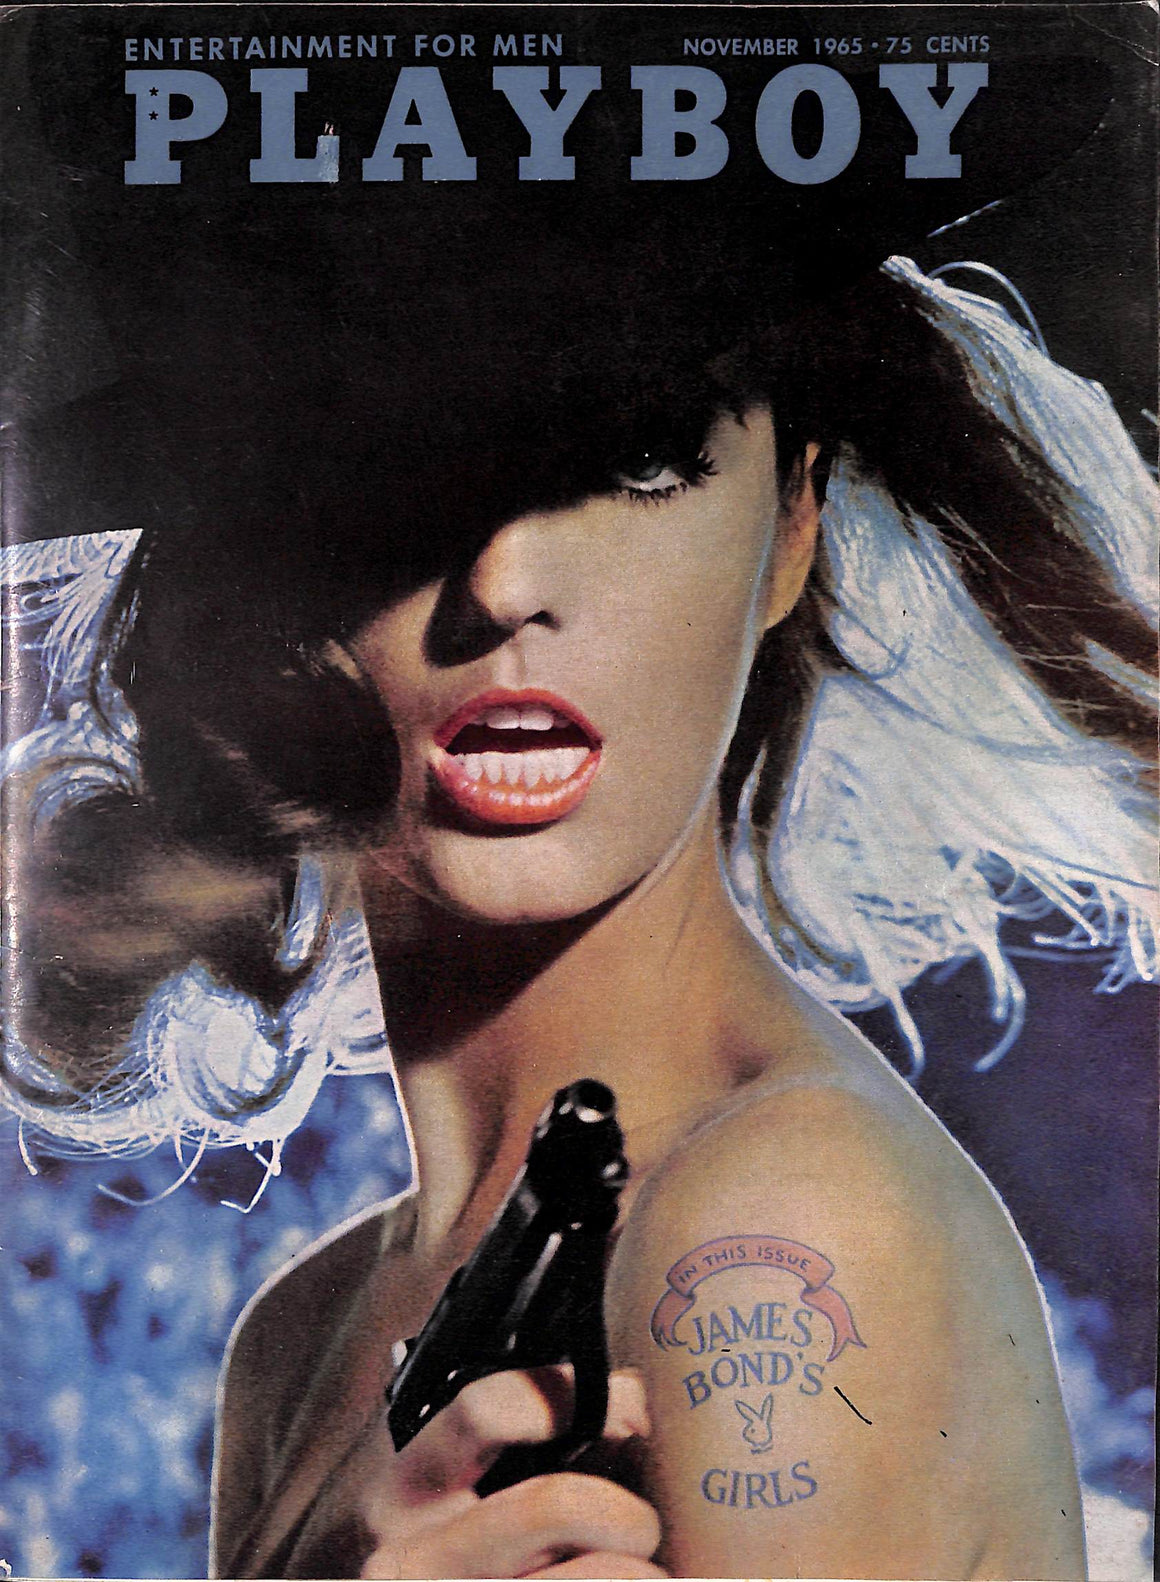 Playboy 'James Bond's Girls' Nov 1965 w/ Honor Blackman et al.